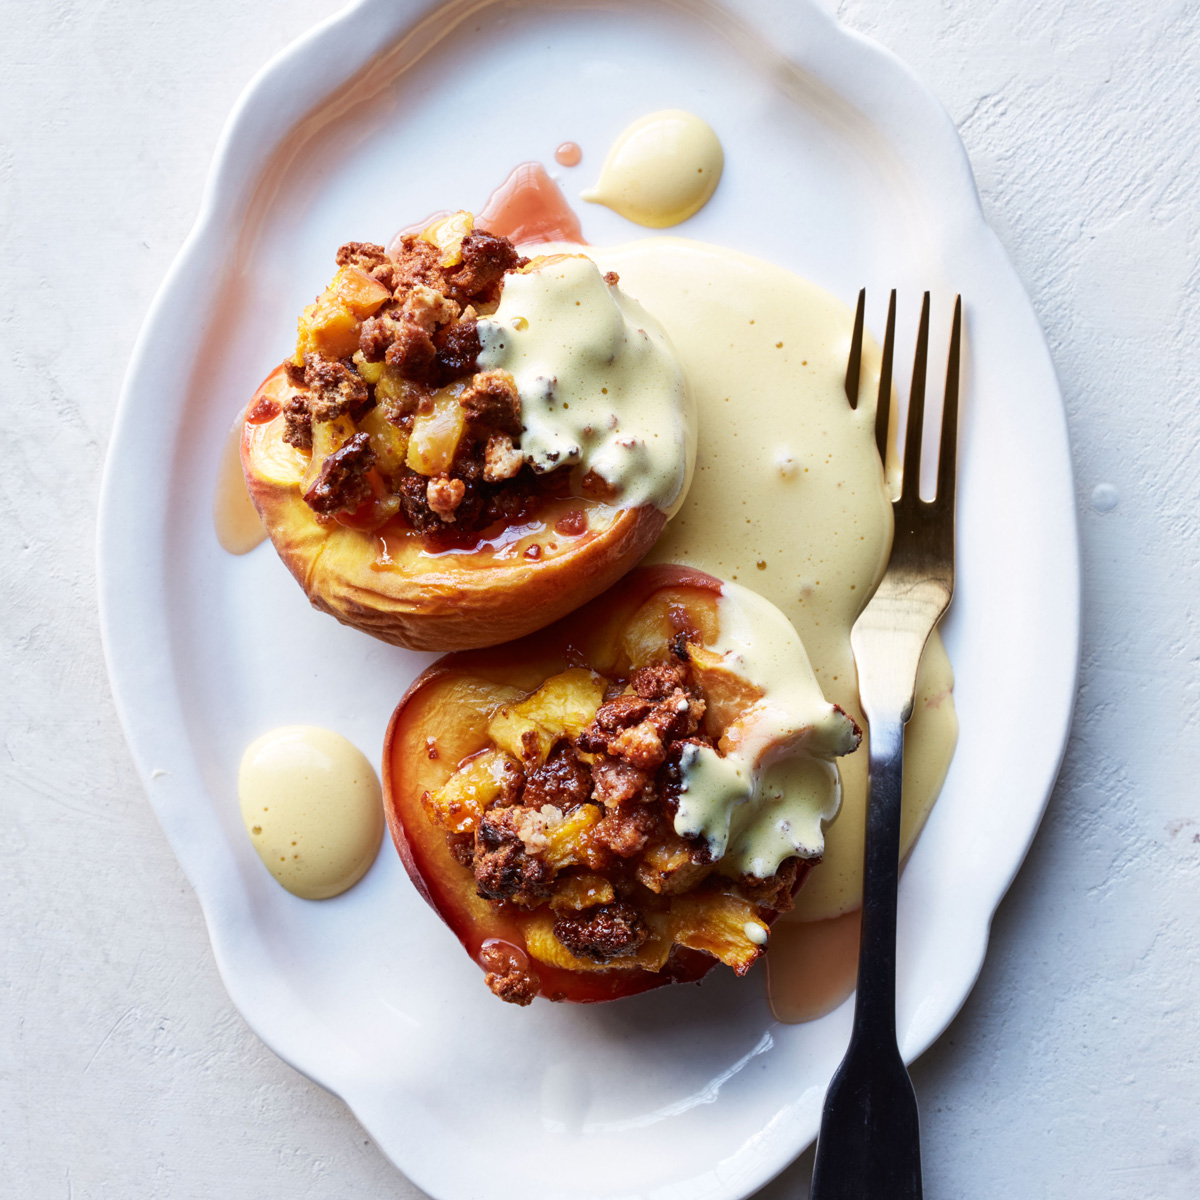 Baked Stuffed Peaches with Saffron Zabaglione